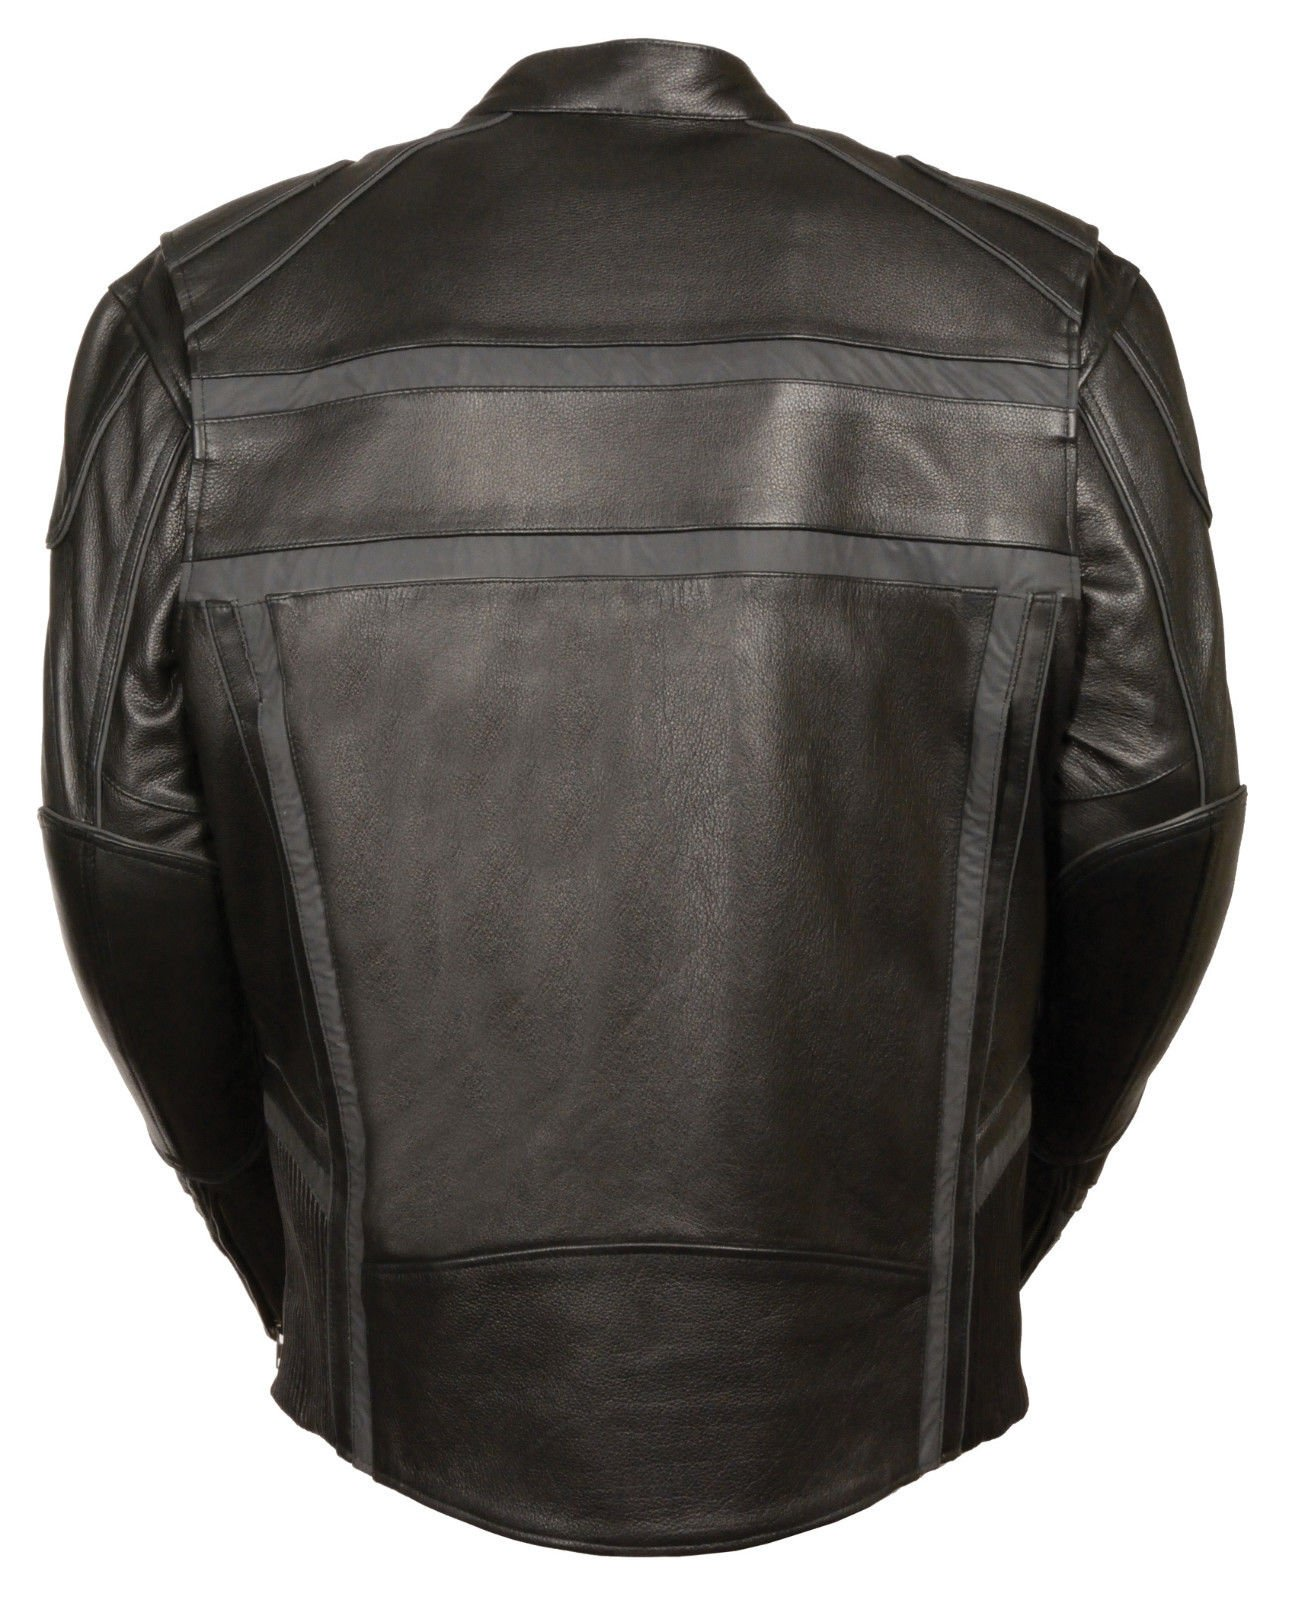 MEN'S MOTORCYCLE REFLECTIVE STRIPE SCOOTER COW LEATHER VENTS JACKET SIDE STRETCH (2XL Regular) by Milwaukee (Image #3)